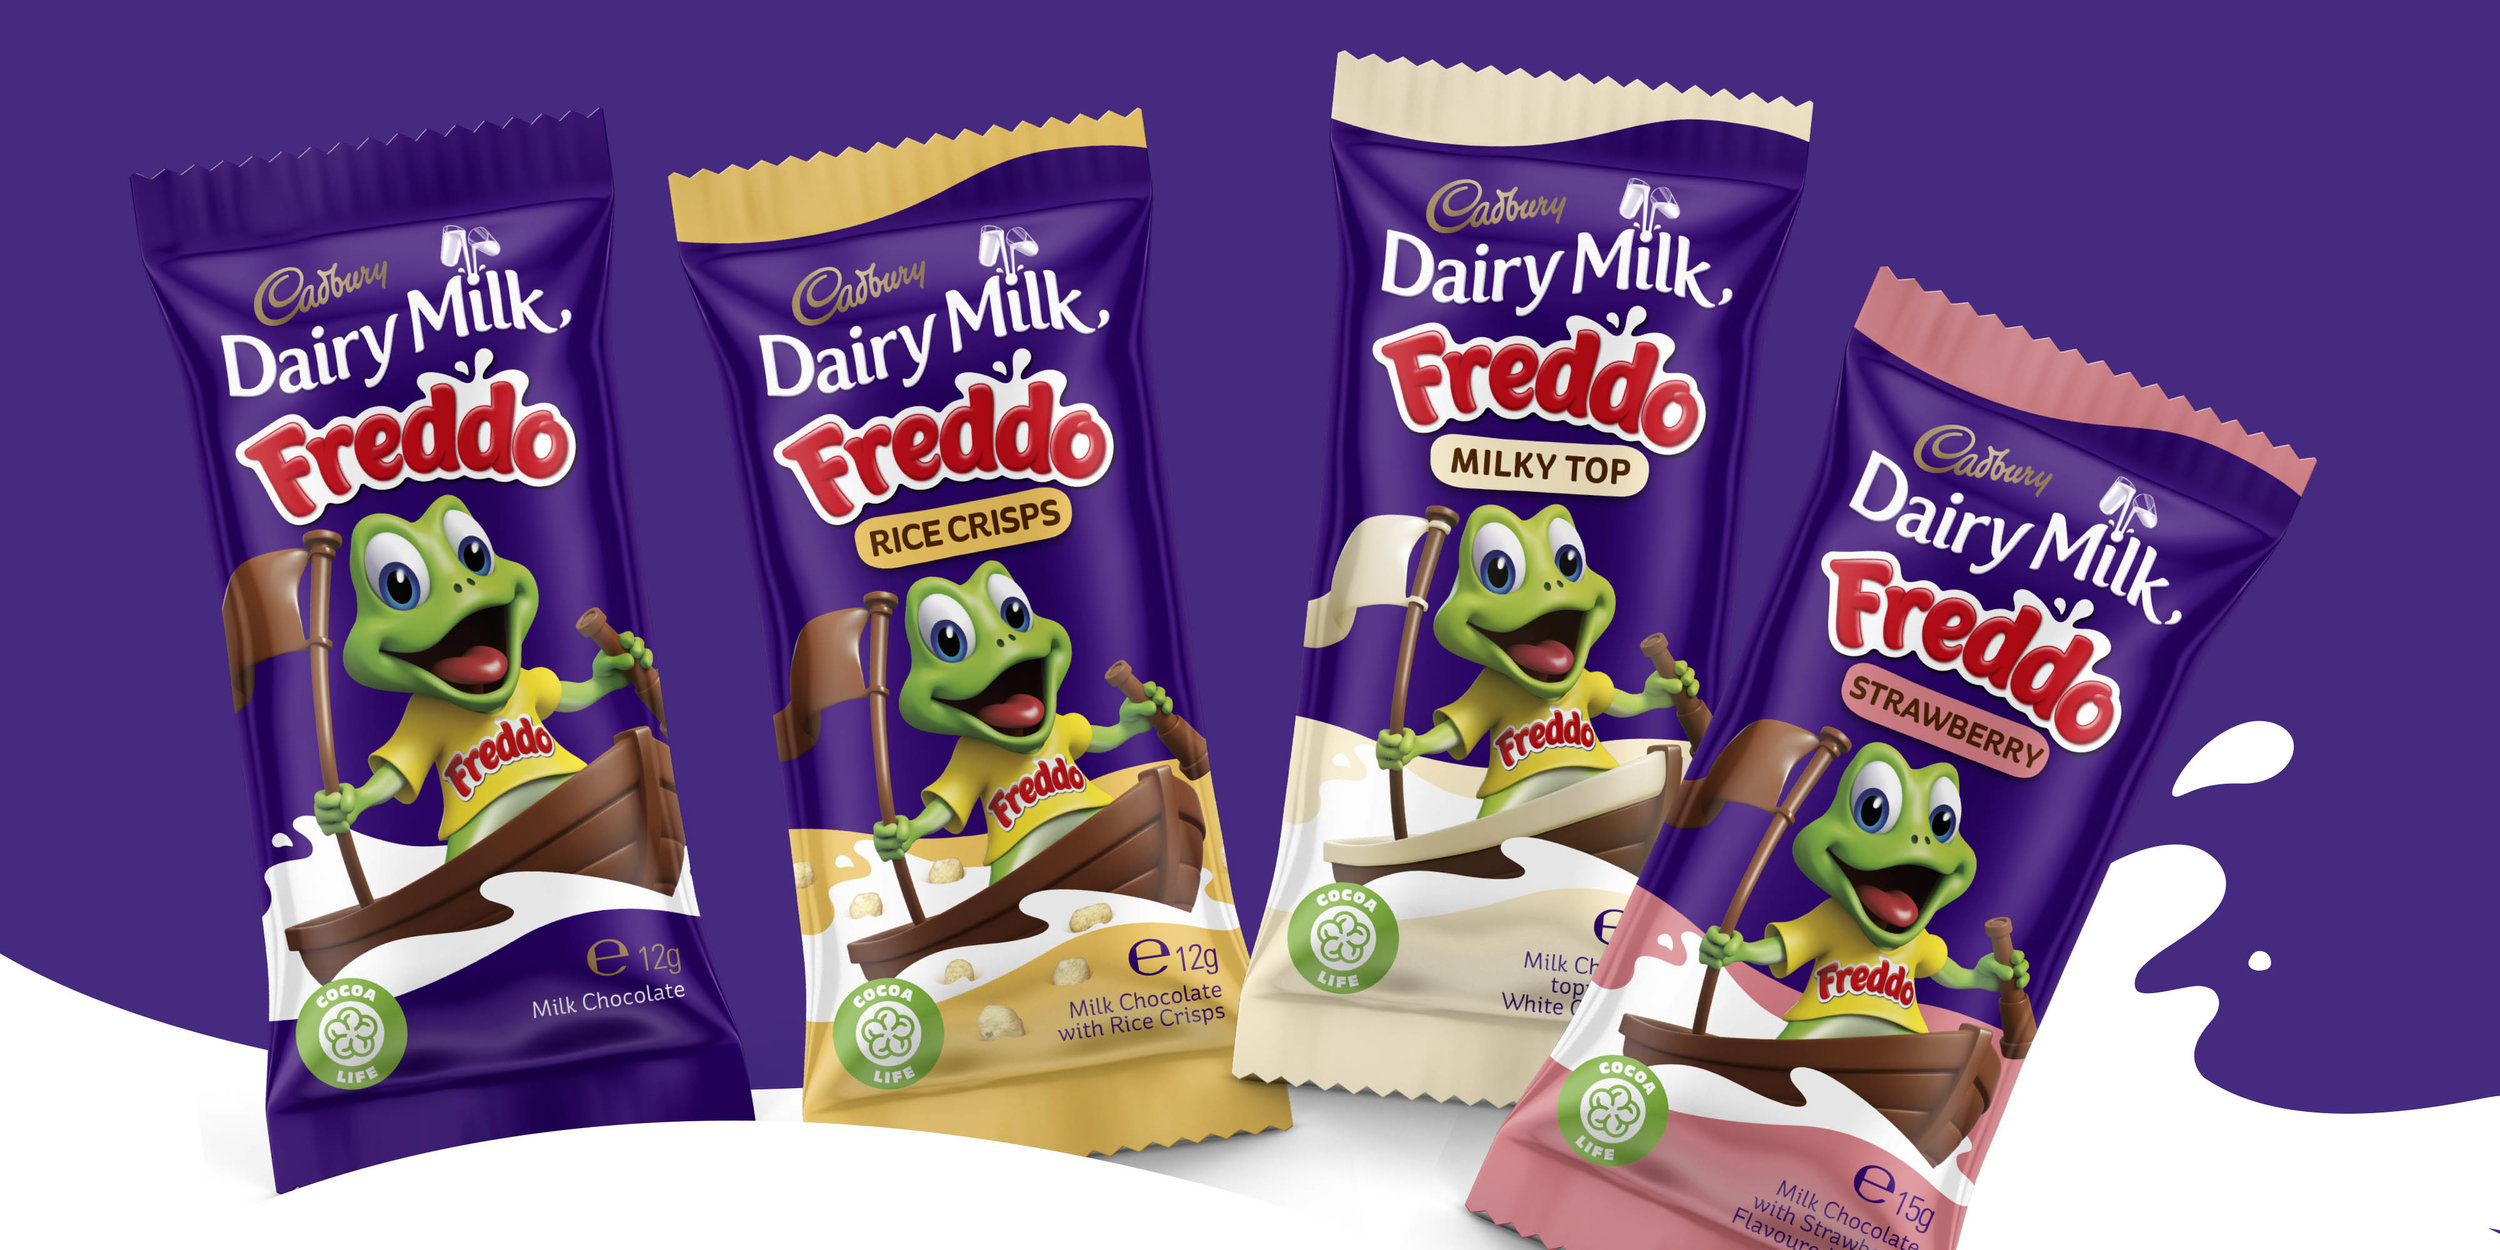 Freddo_Front Page.jpg